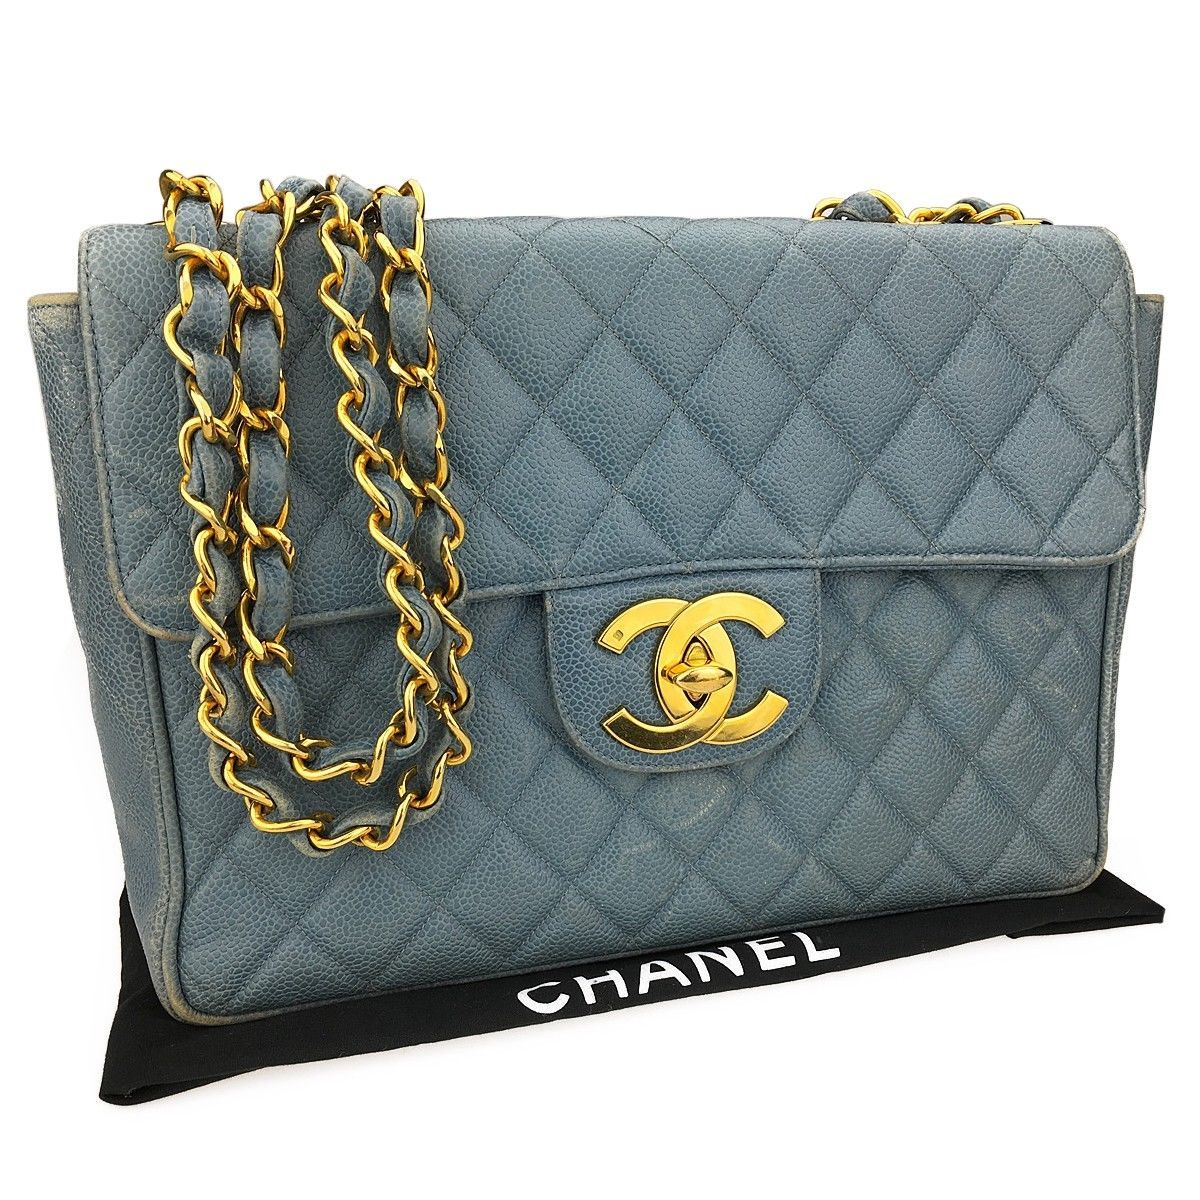 ba8093d3cada Auth CHANEL Matelasse Jumbo Light Blue Caviar Skin Leather Chain Shoulder  Bag